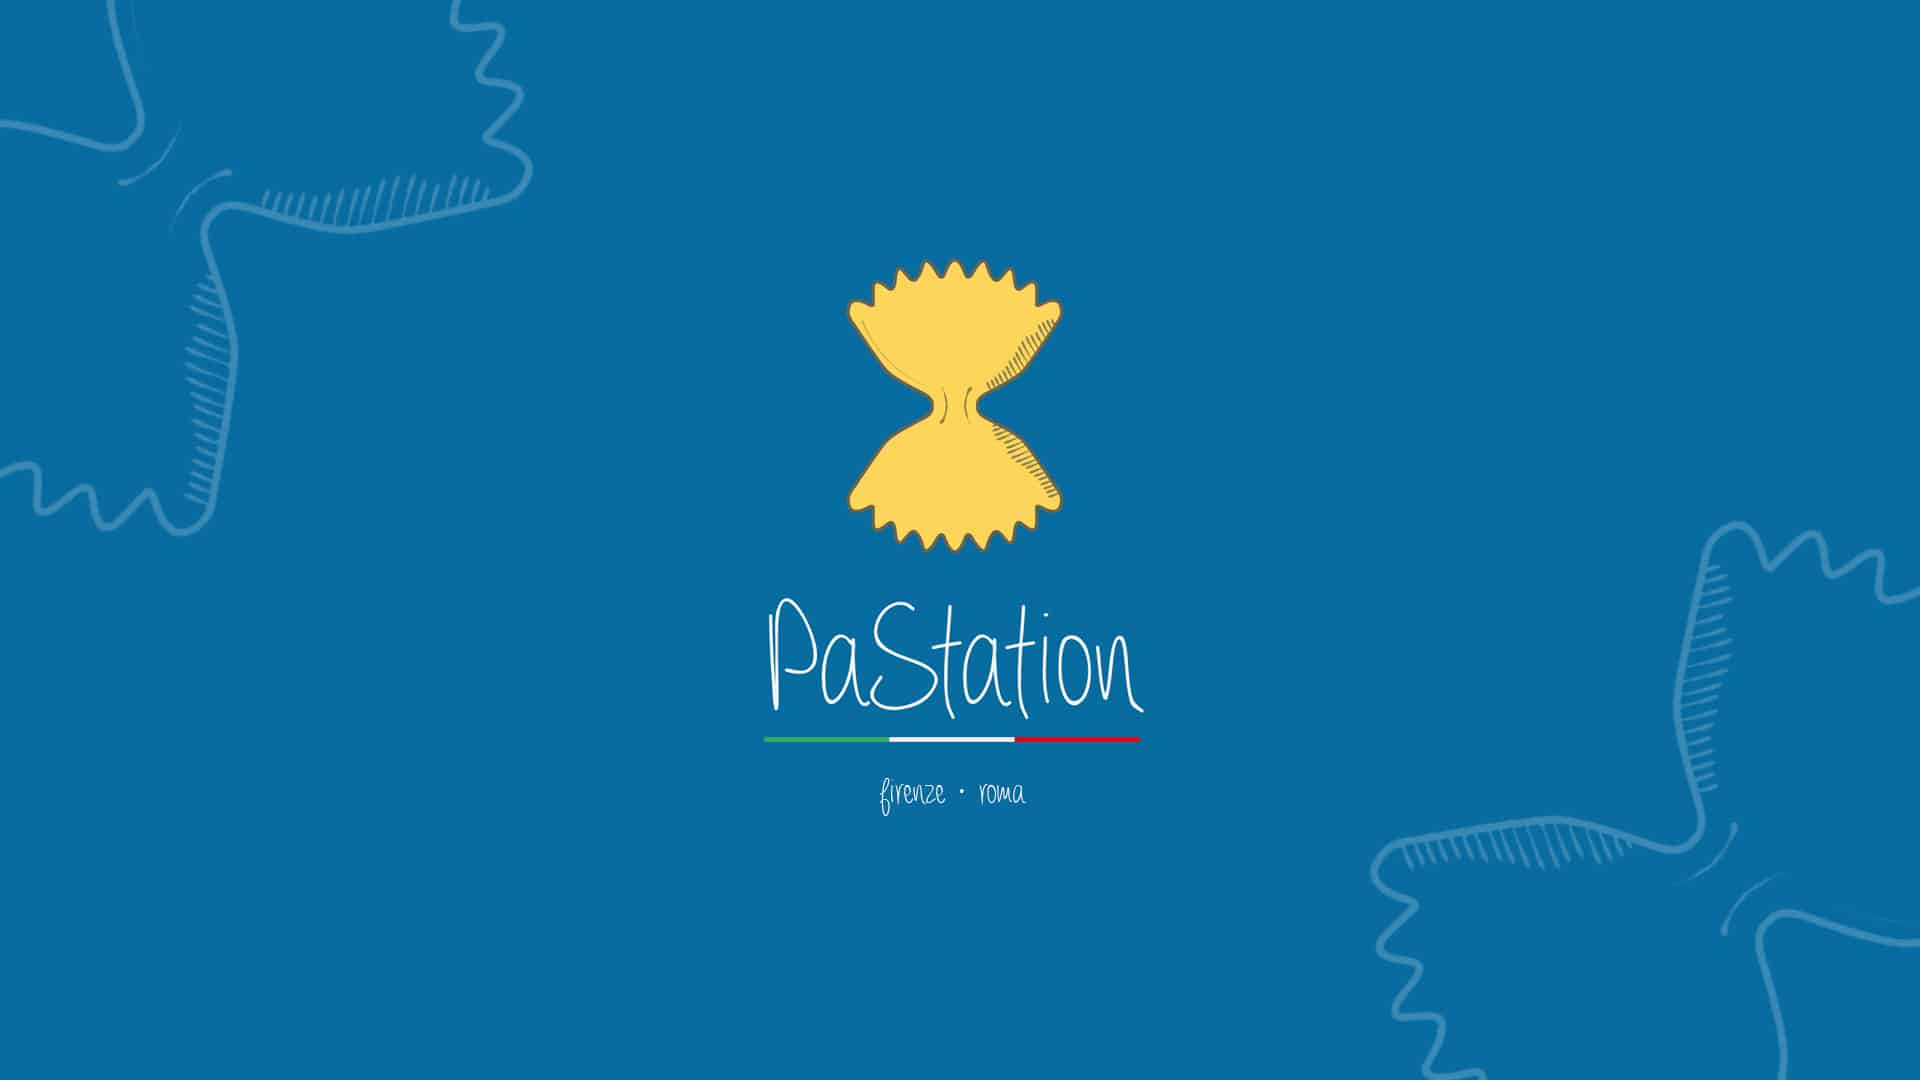 Pastation Firenze Roma Coming Soon